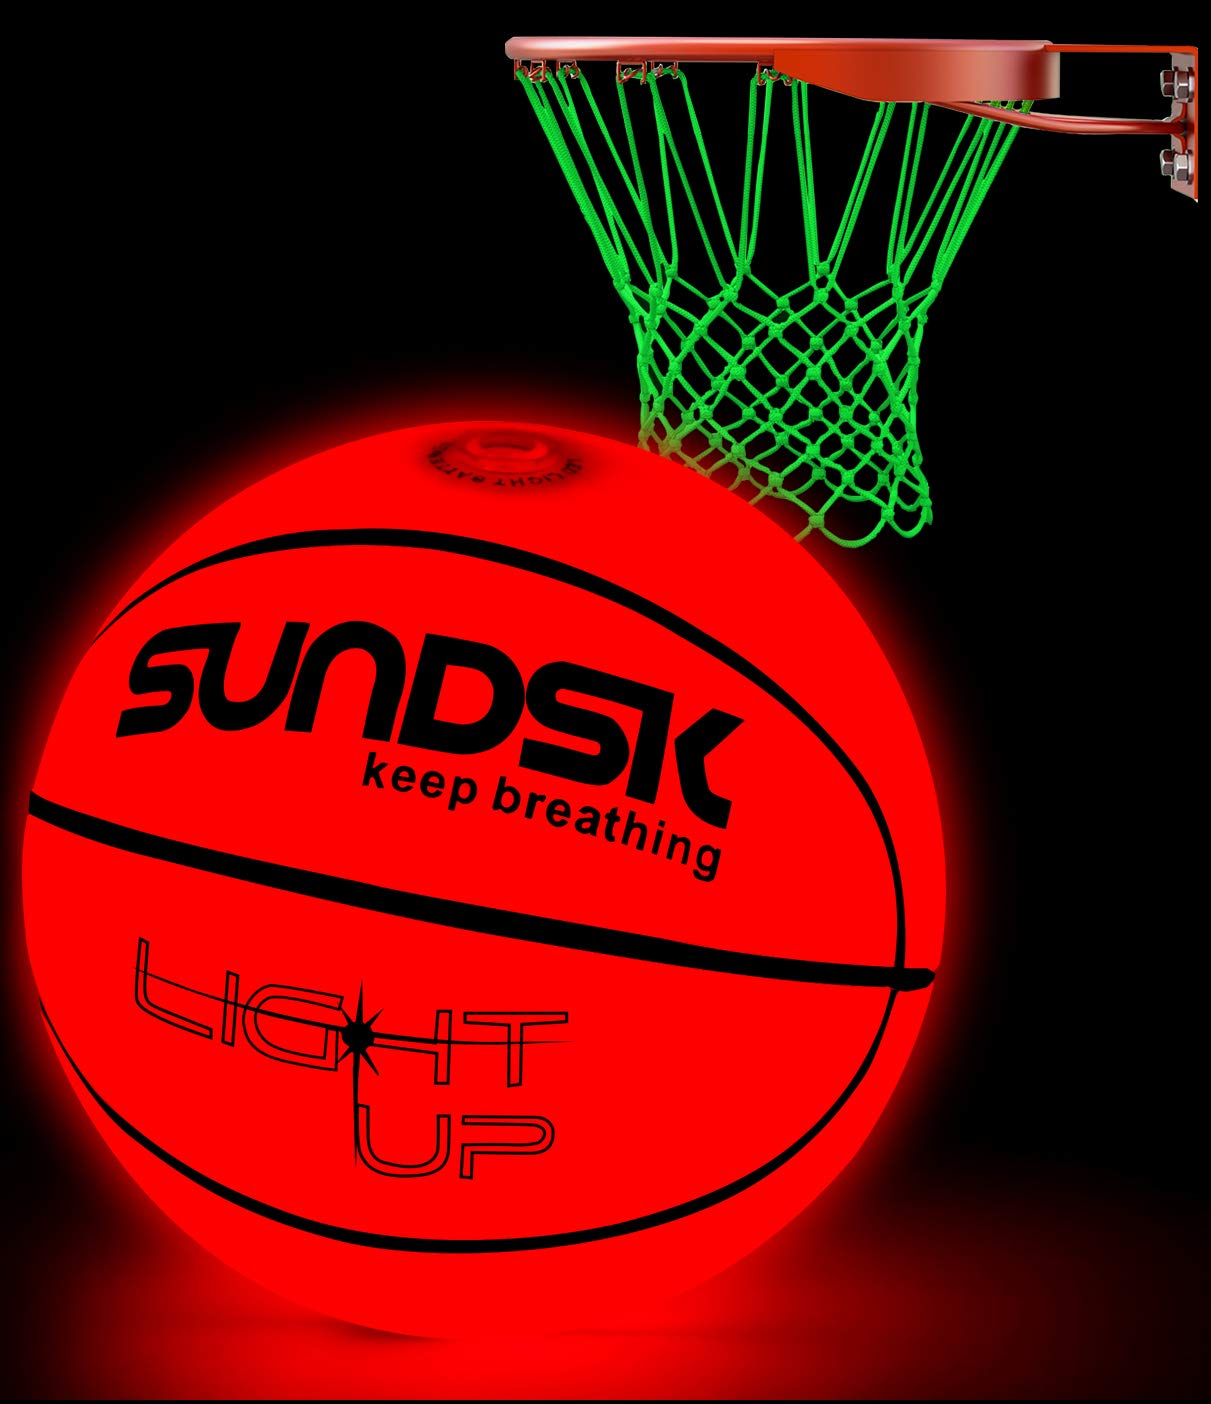 SCIONE Light Up Basketball Hoop Kit with LED Outdoor Basketball and Glow in The Dark Basketball Net Size 5 7- Official Size & Weight - Night Basketball Sports